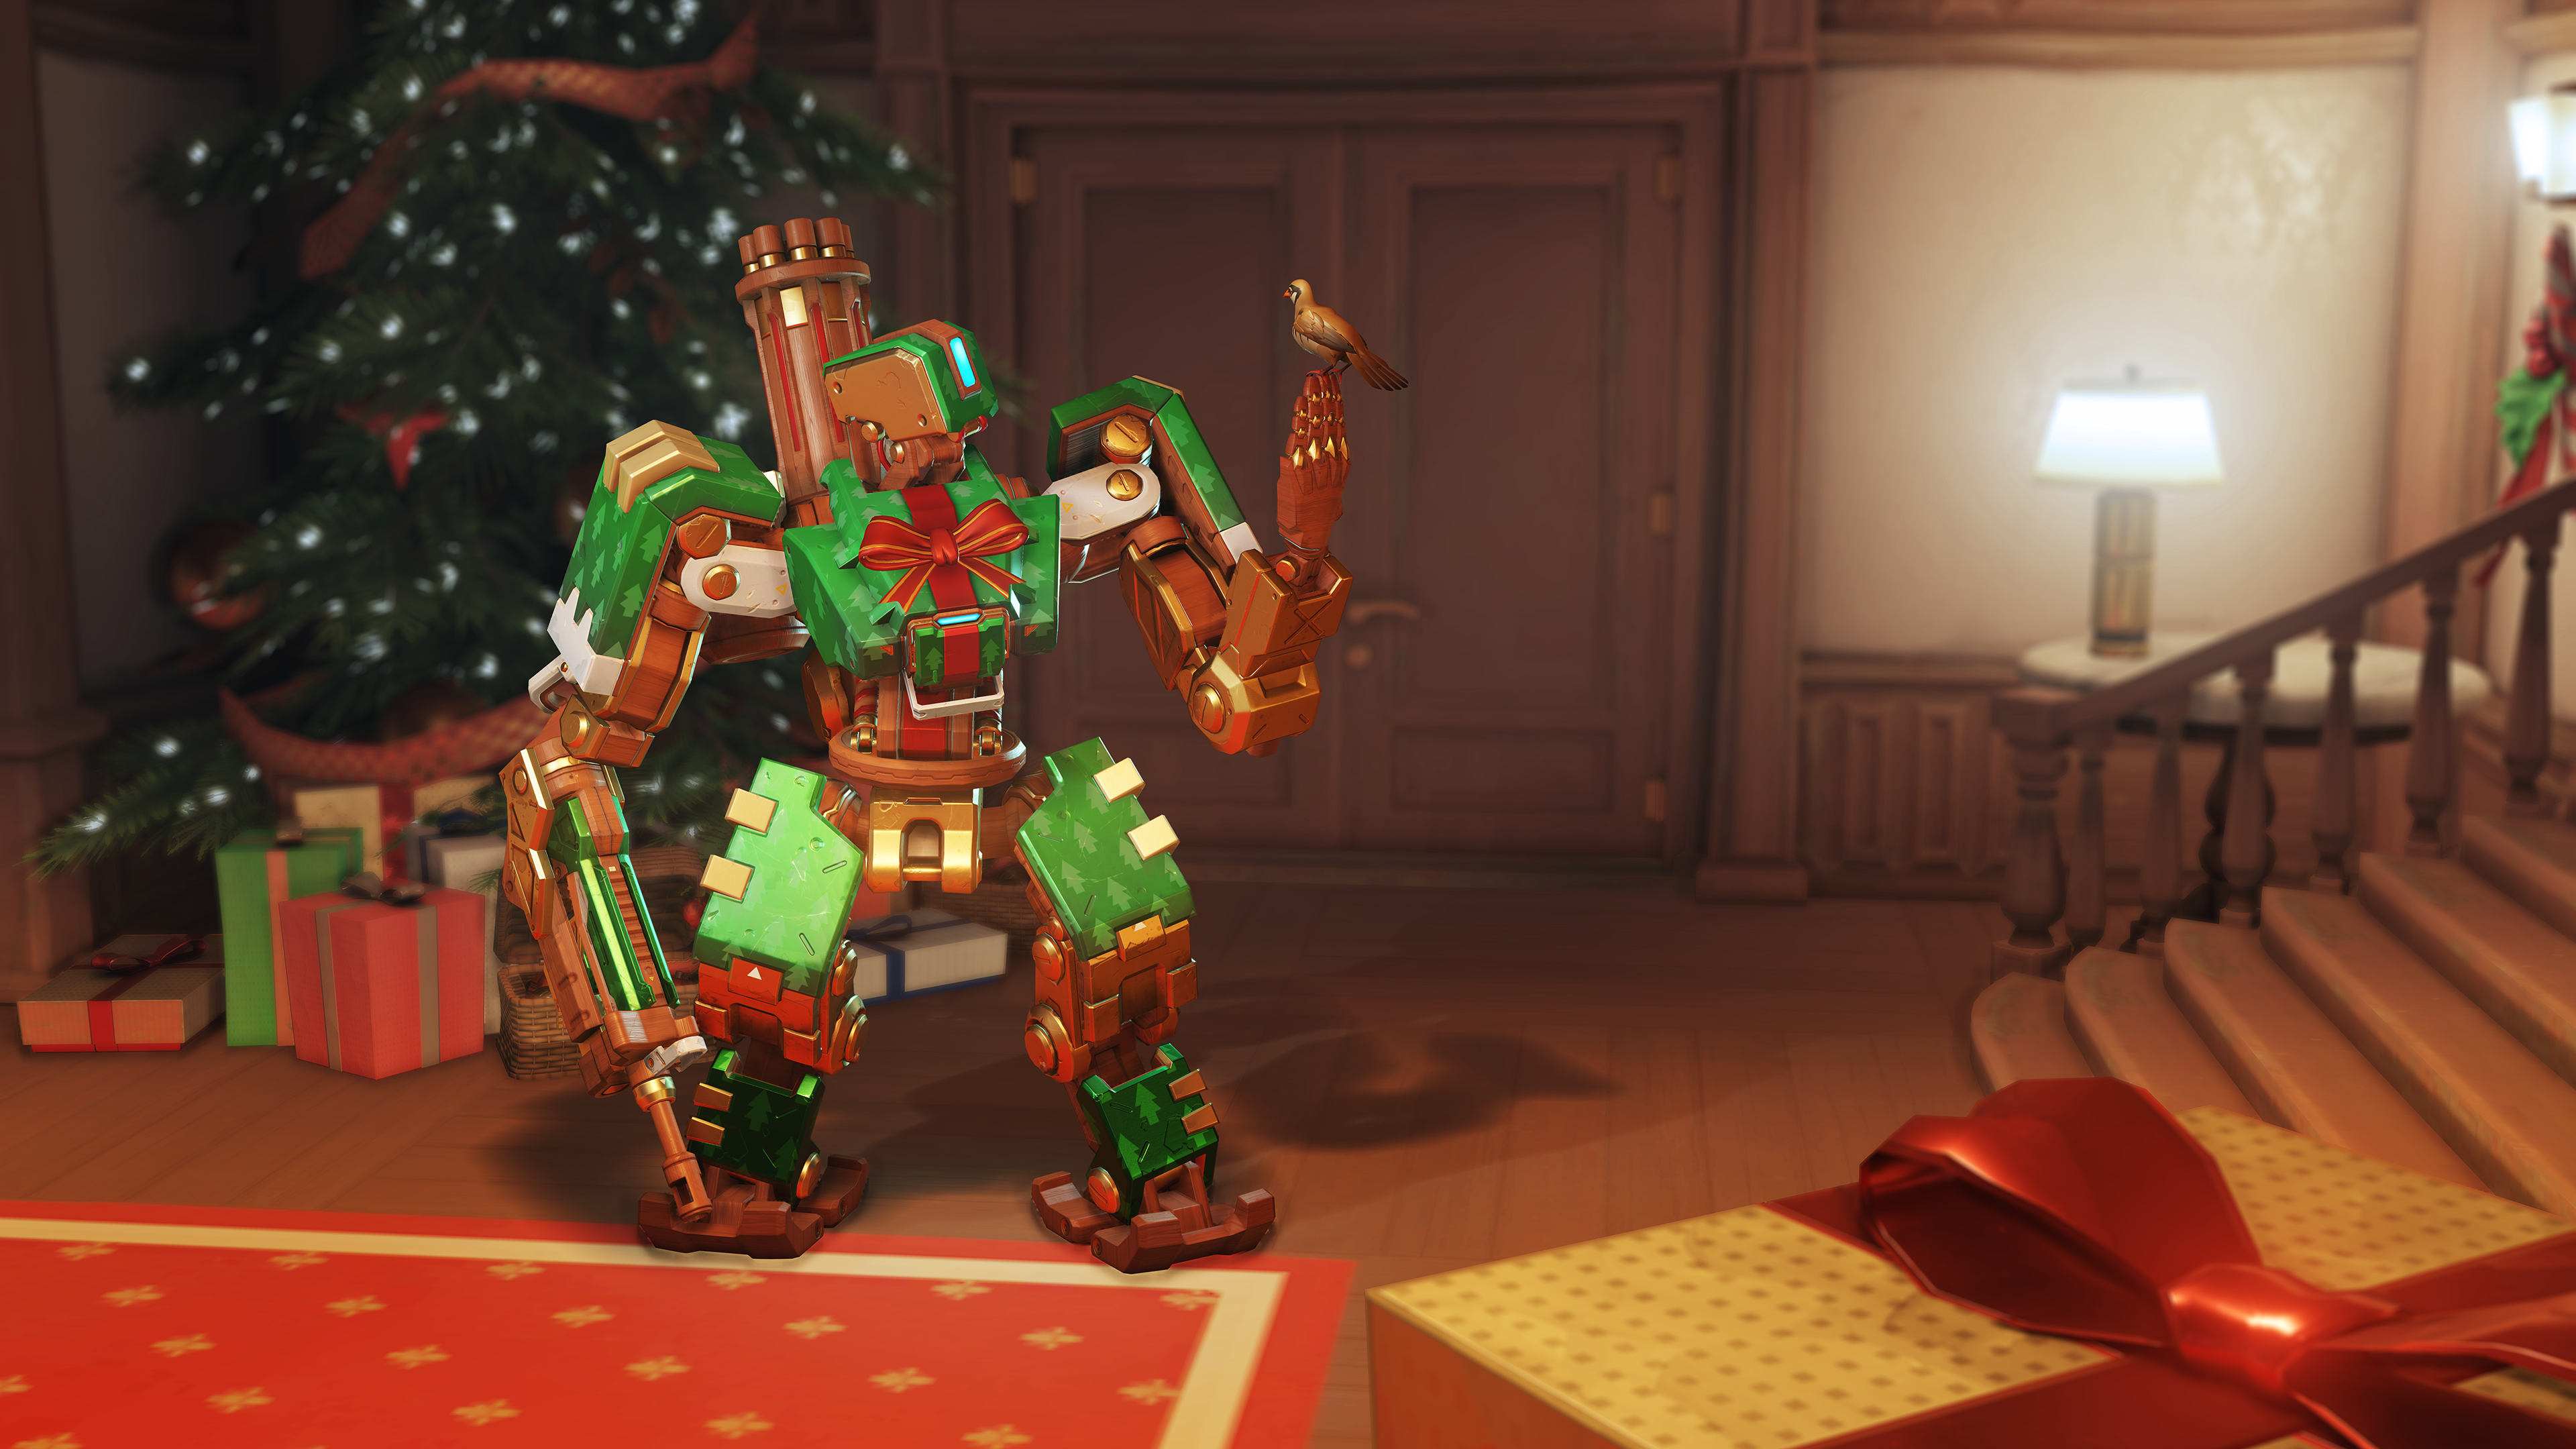 You can get 5 free holiday loot boxes in Overwatch today